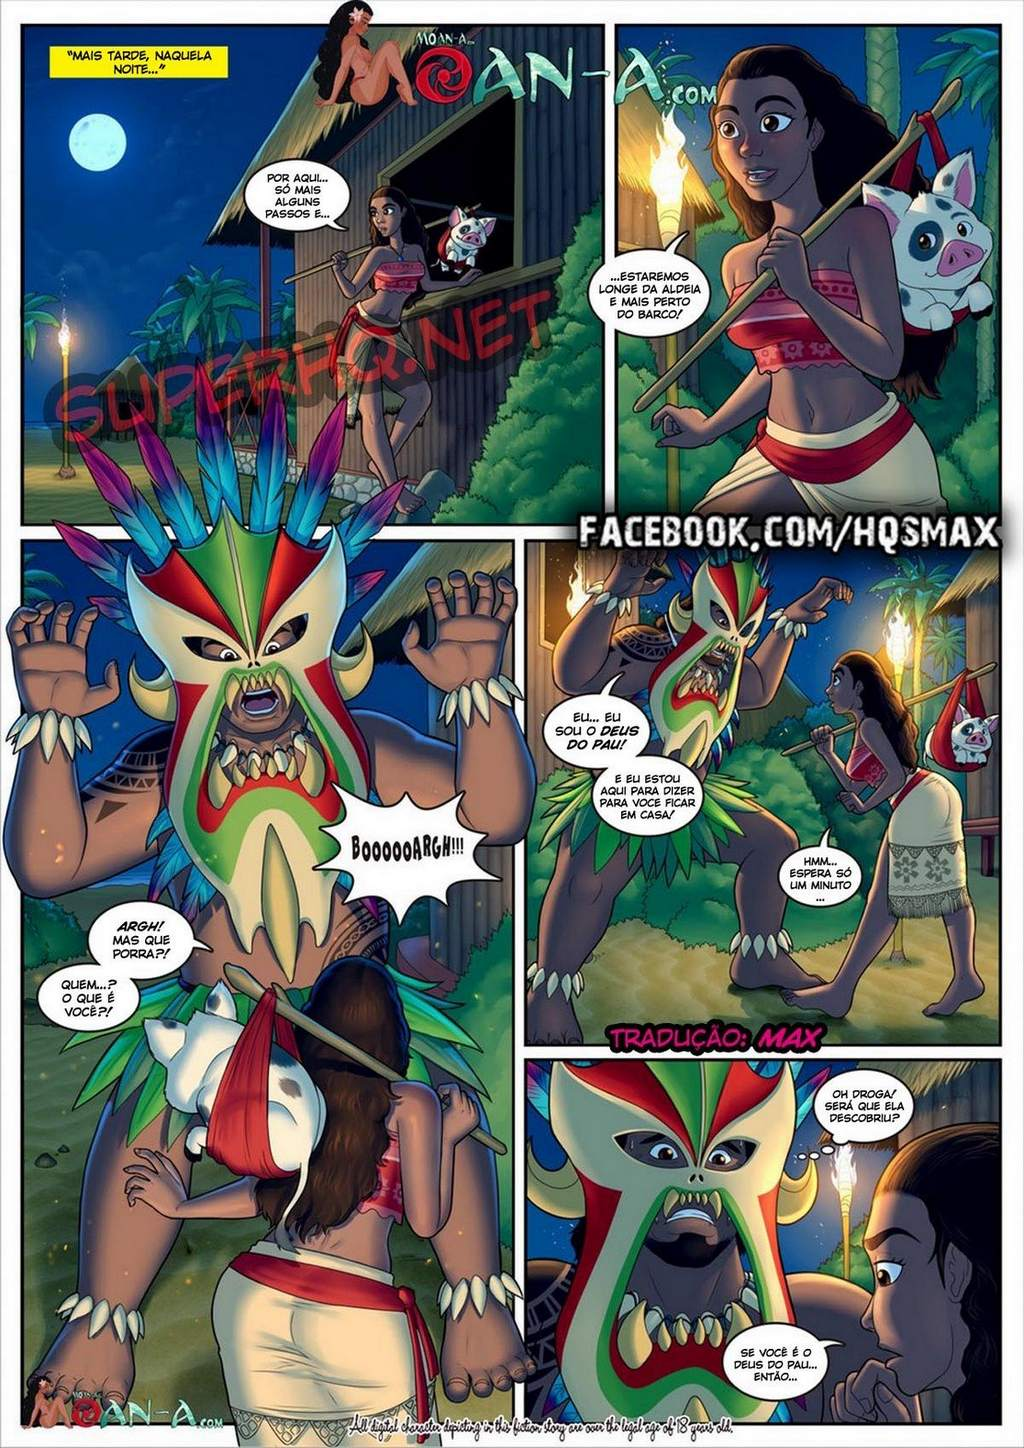 Moana – A ilha do gemido part 1 Disney Hentai Pag. 06 - hentai, comics-hq